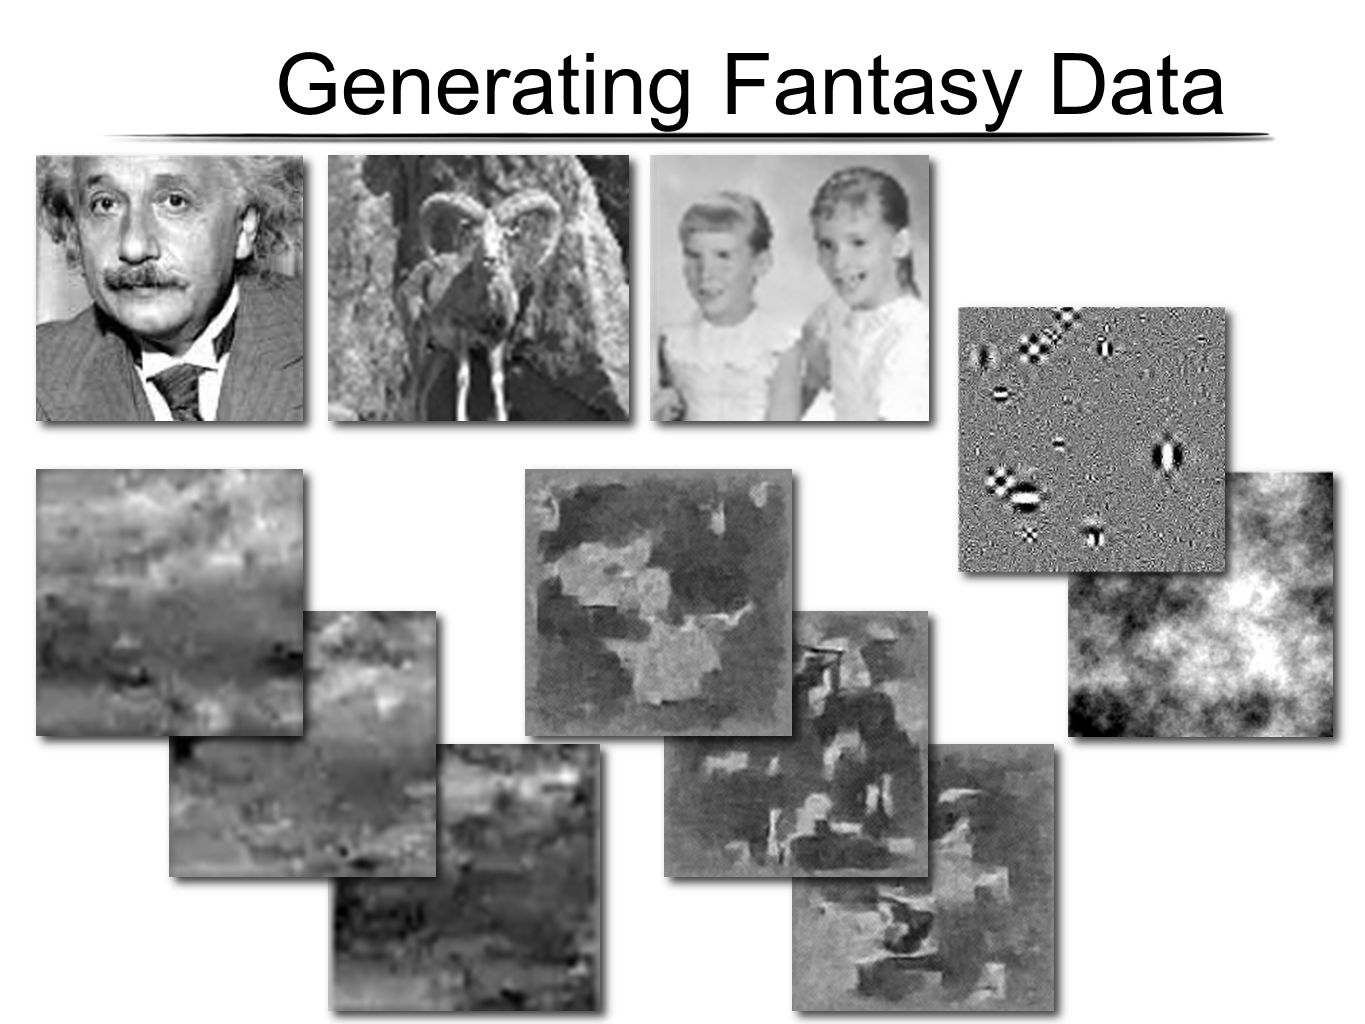 Generating Fantasy Data